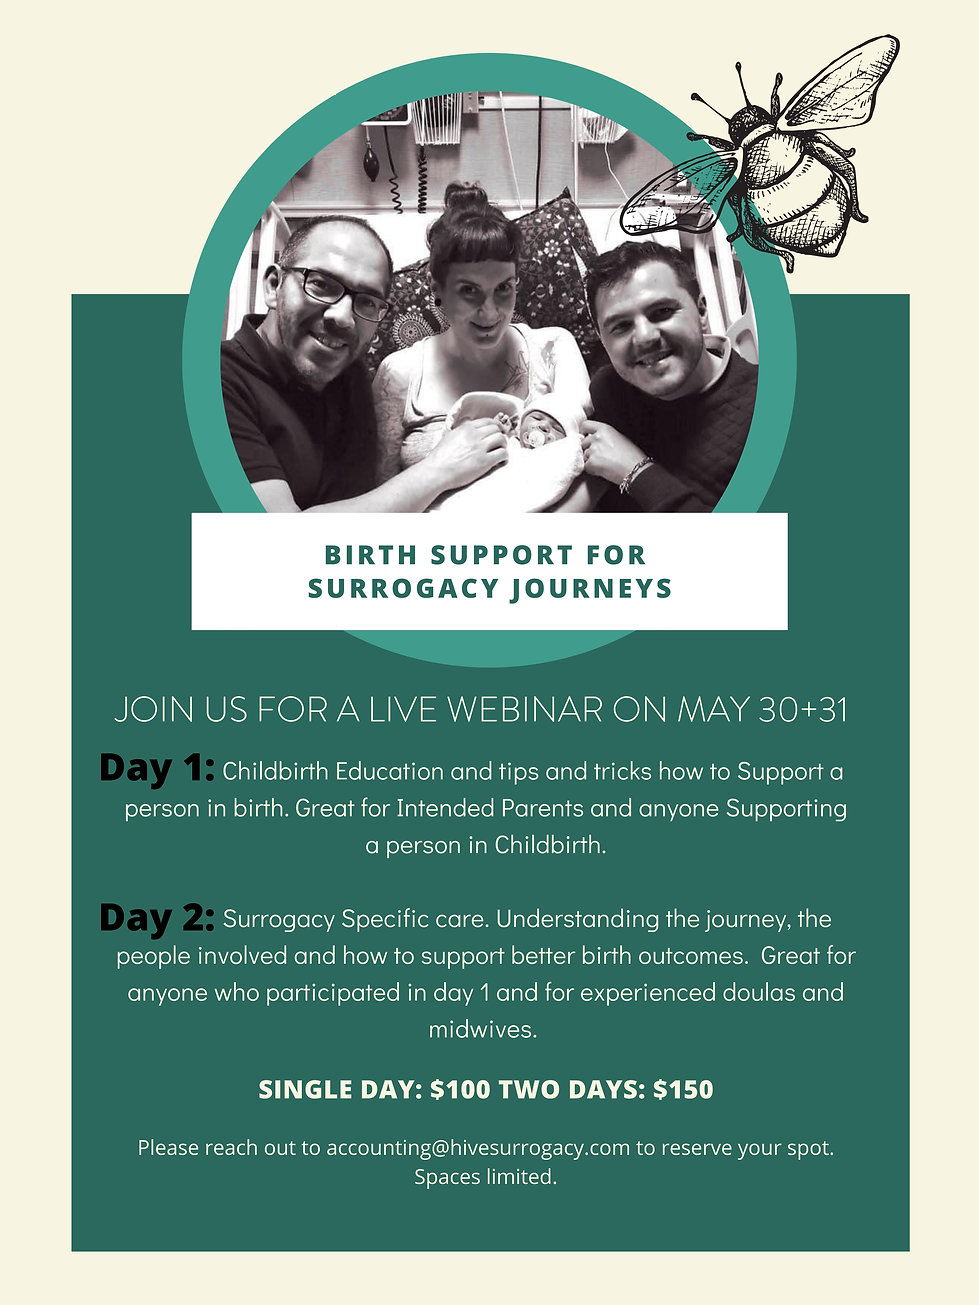 Birth Support for Surrogacy Journeys (4)